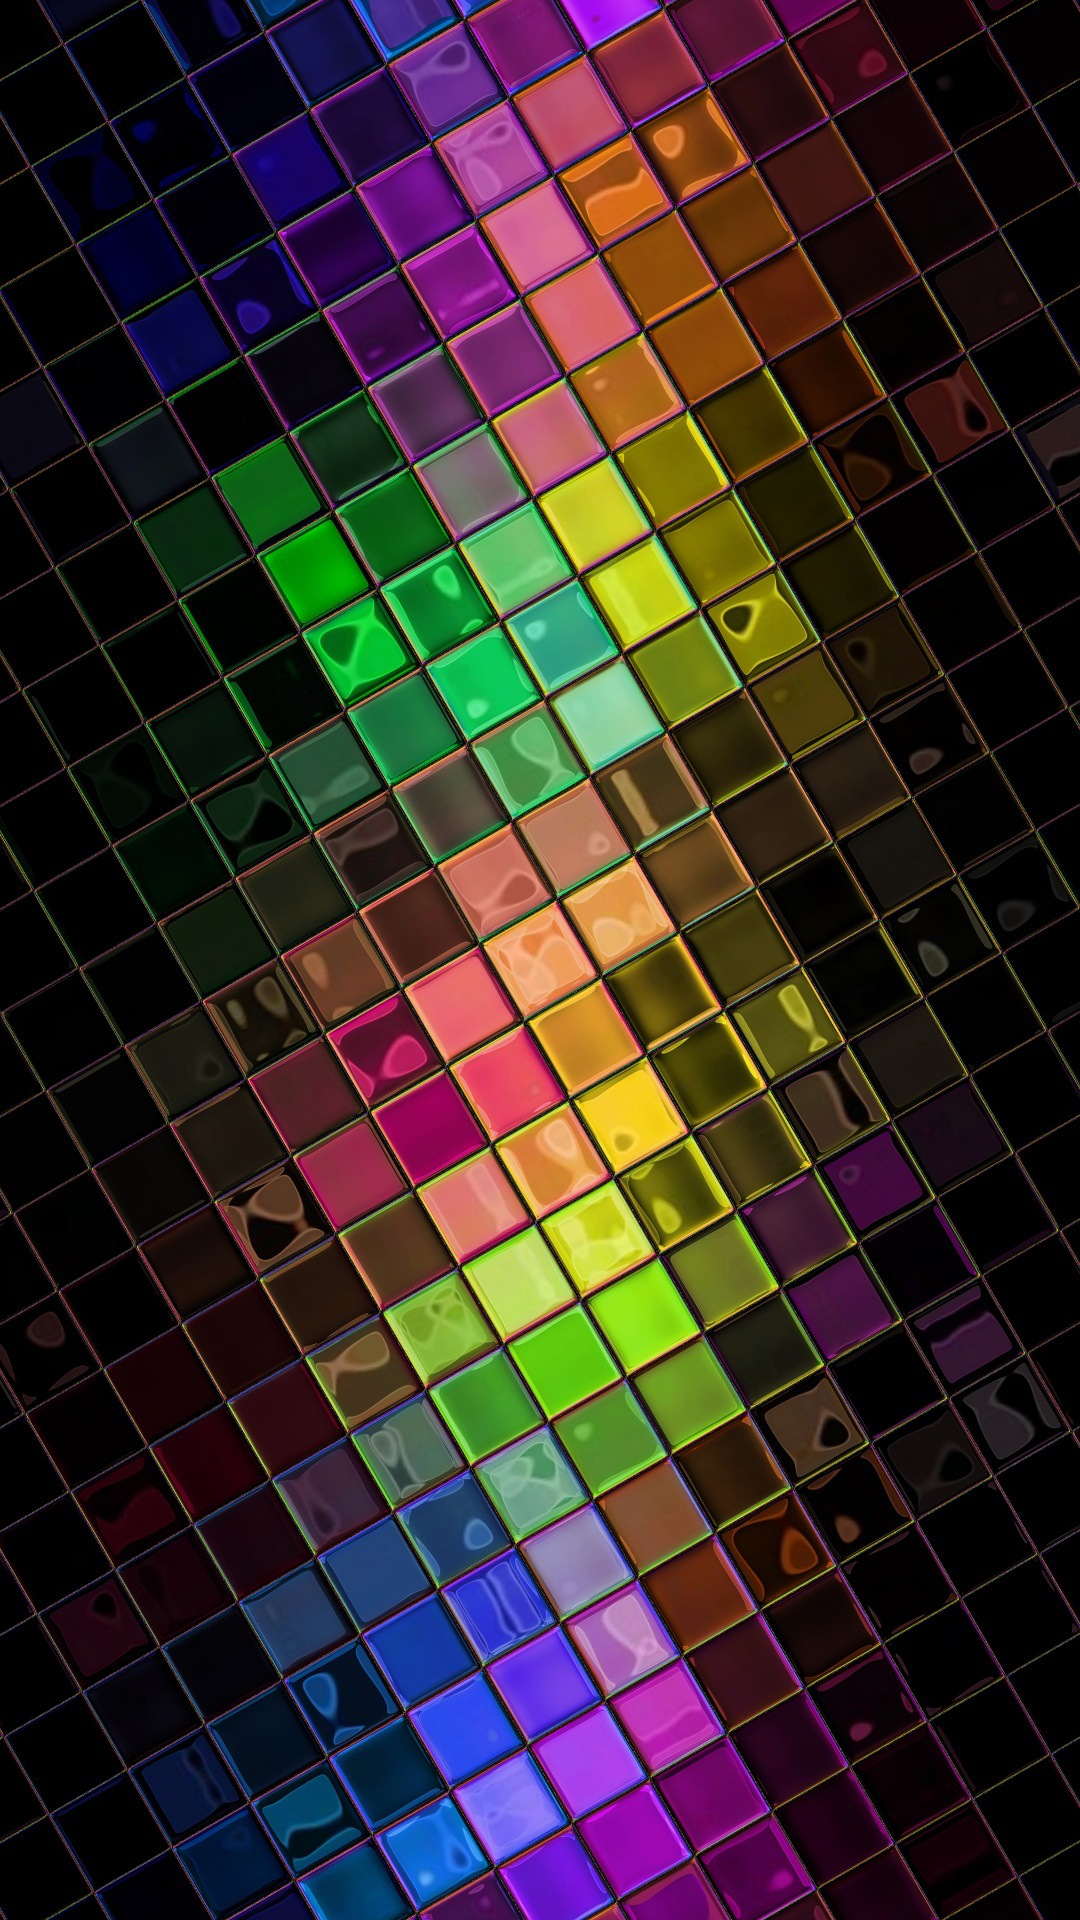 Colorful HD Squares Disco Ball Android Wallpaper download 1080x1920